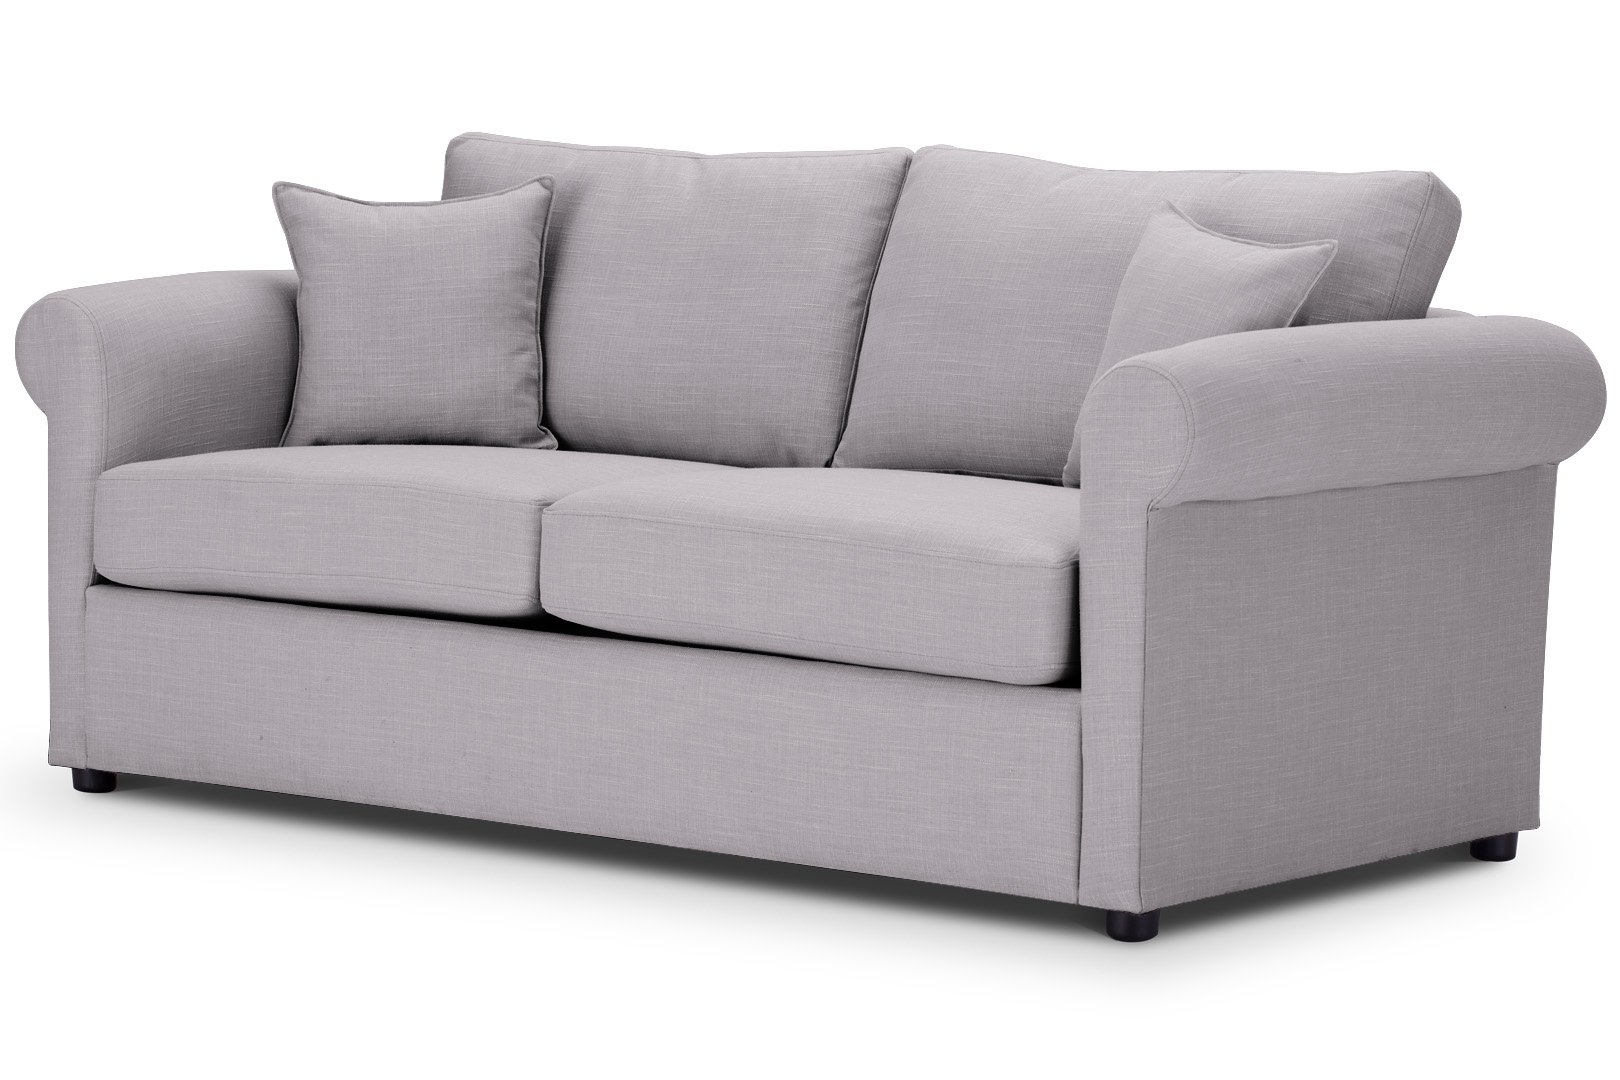 London Sofa at Just British Sofas in Emporio Silver Fabric Emp517 im2